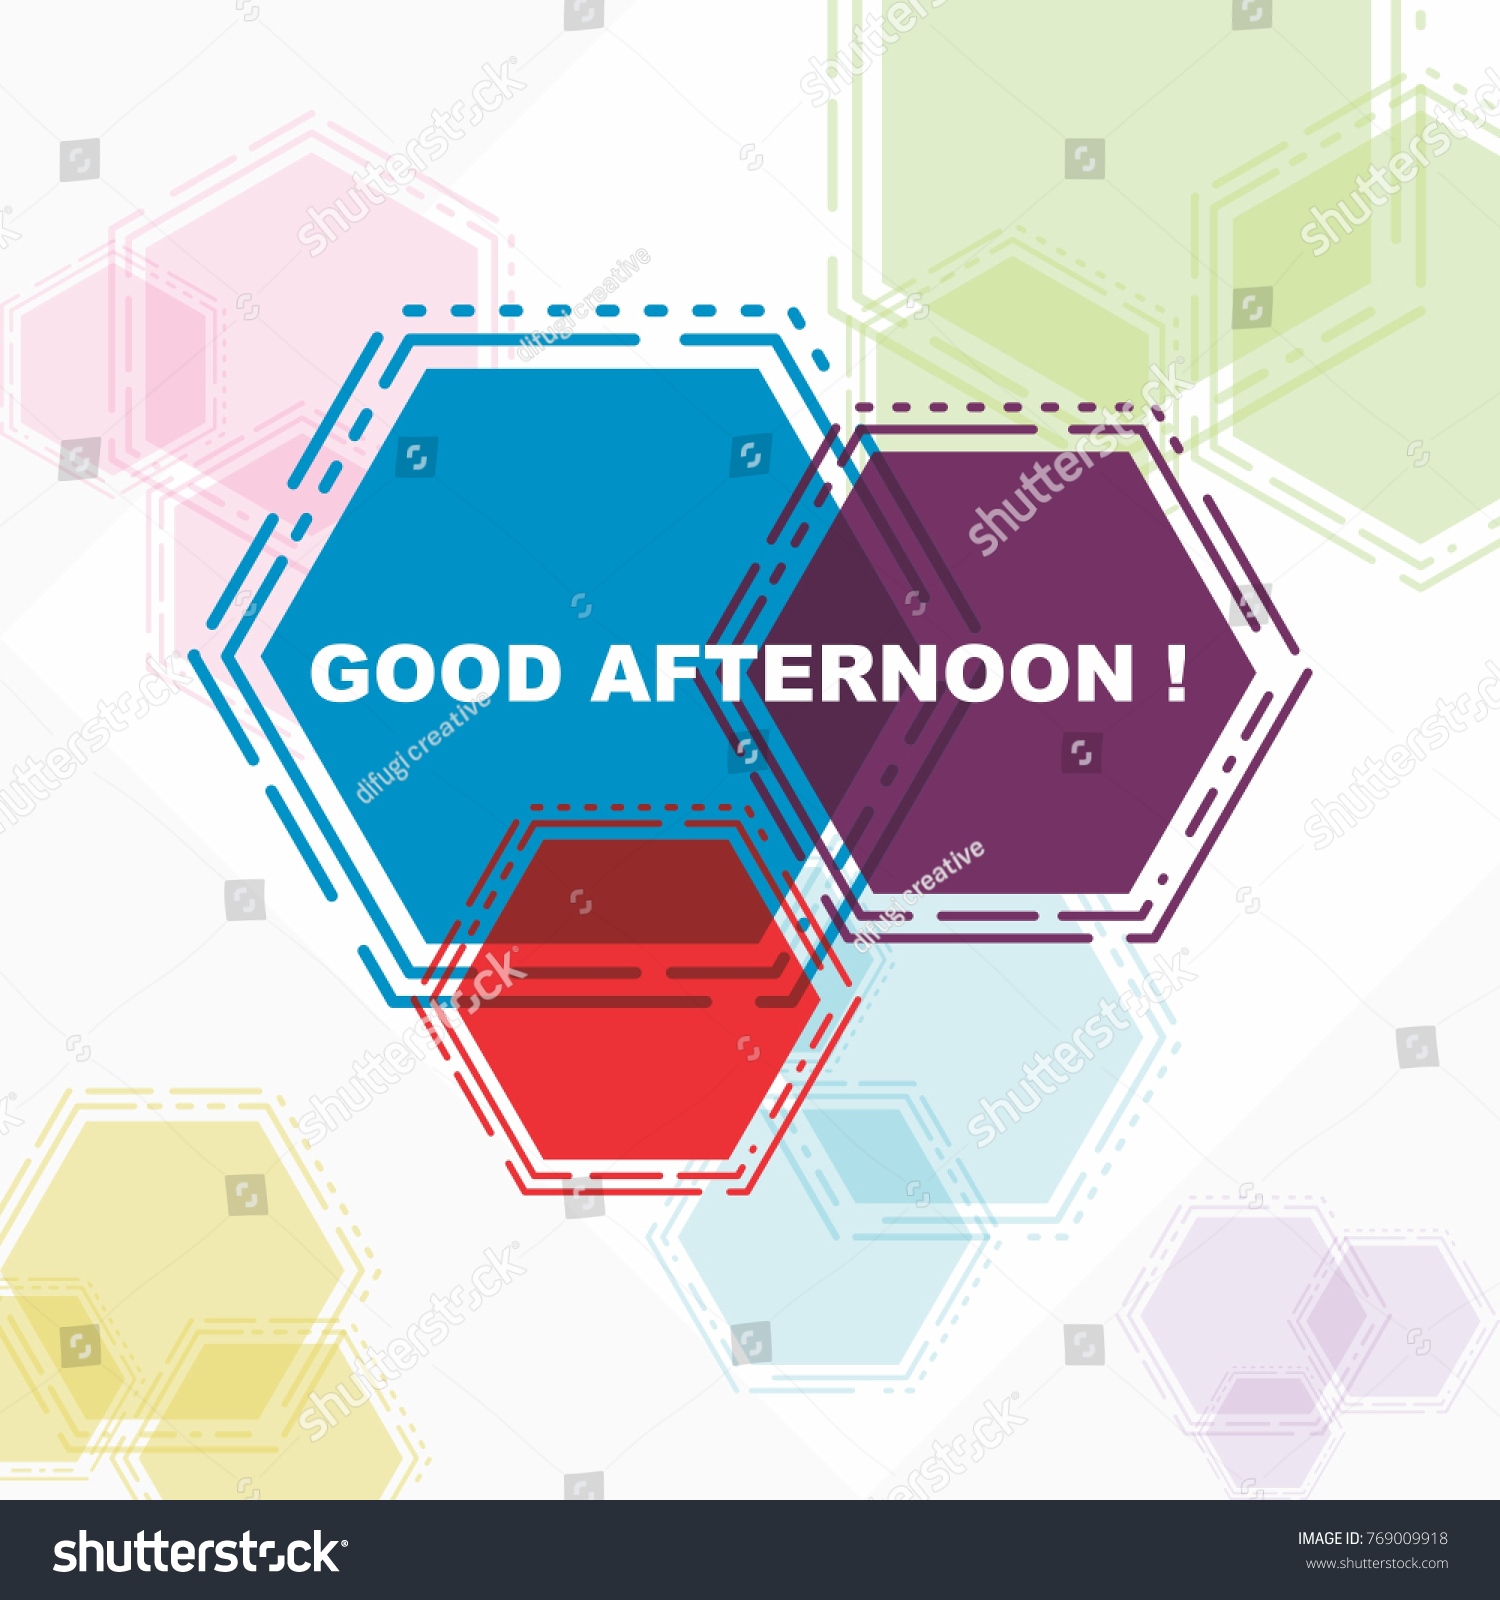 Good Afternoon Beautiful Greeting Card Poster Stock Vector 769009918